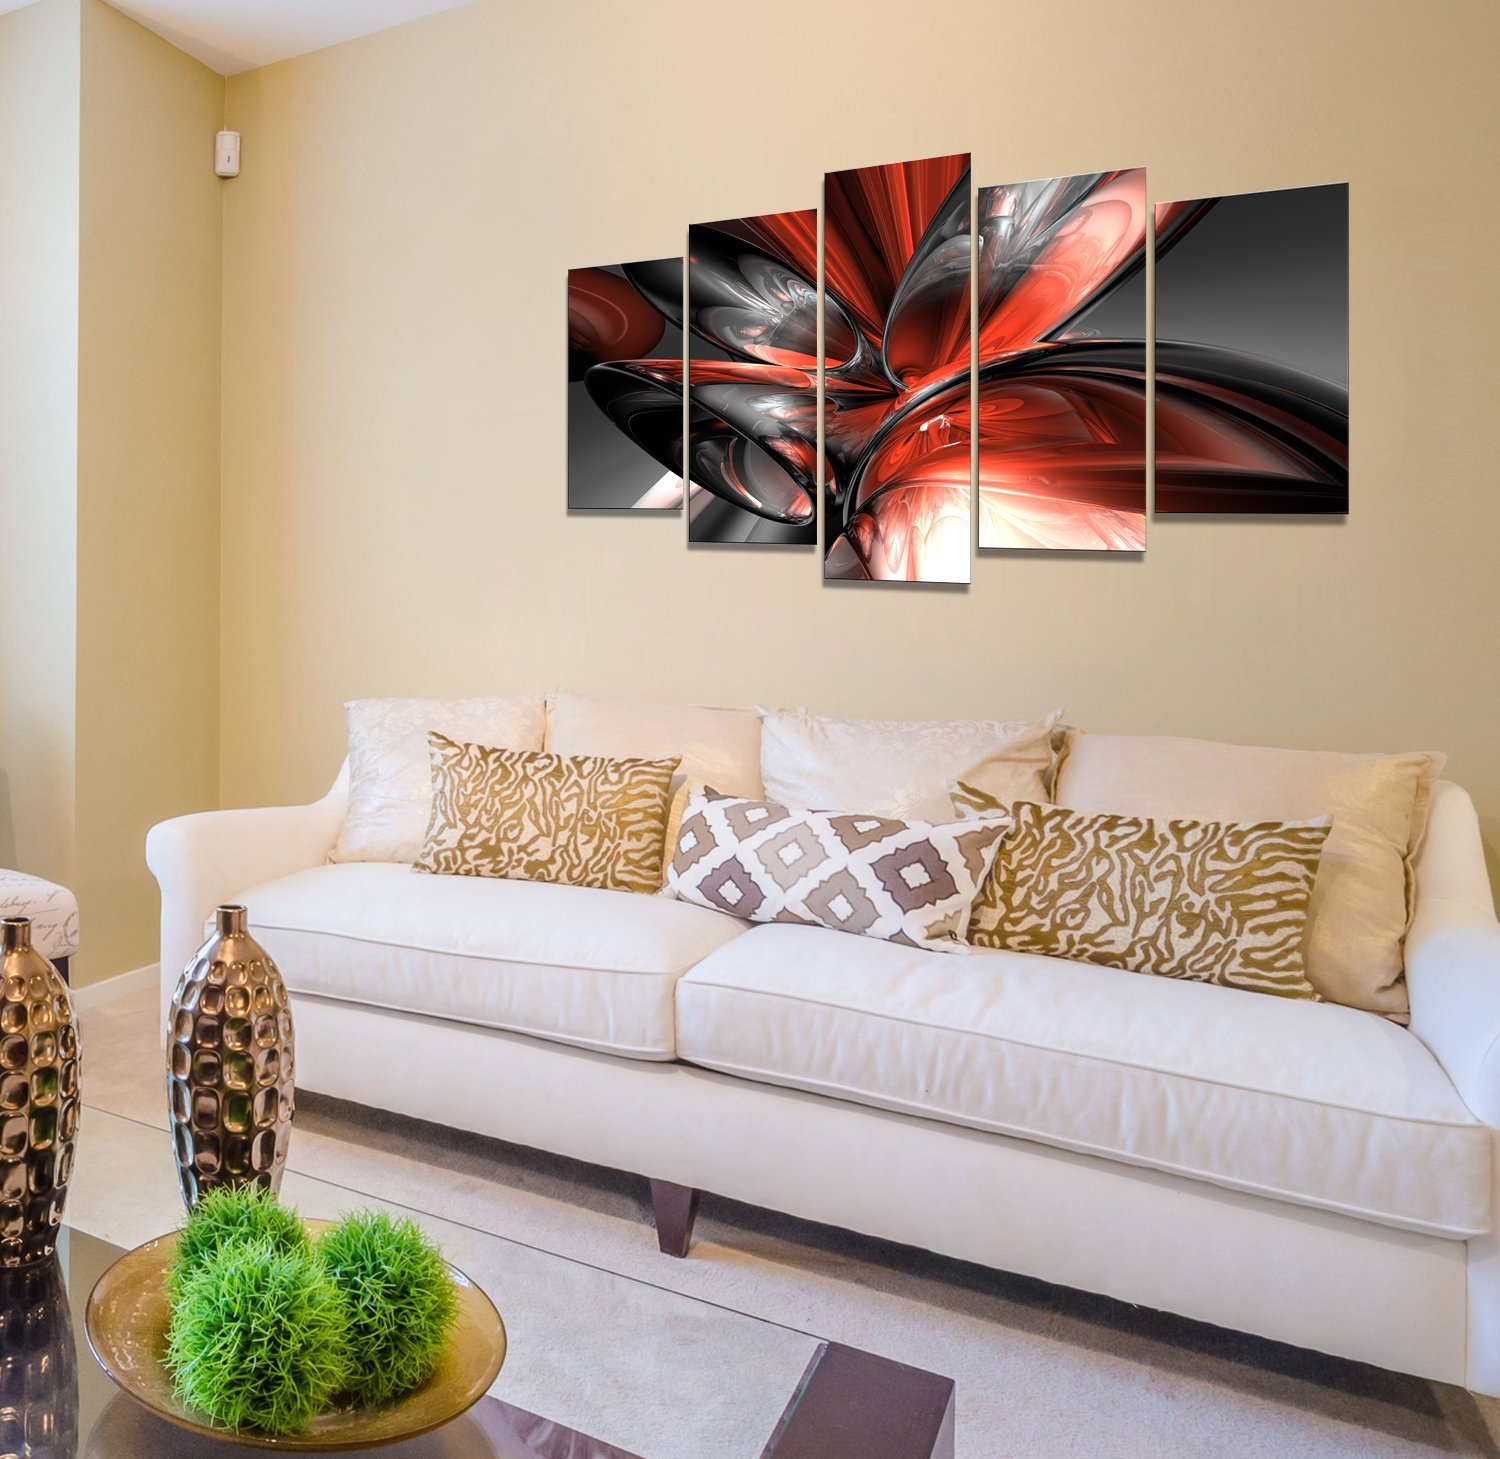 Amazon.com: Fomarkor Art Modern Paintings KX00246 Contemporary Art ...